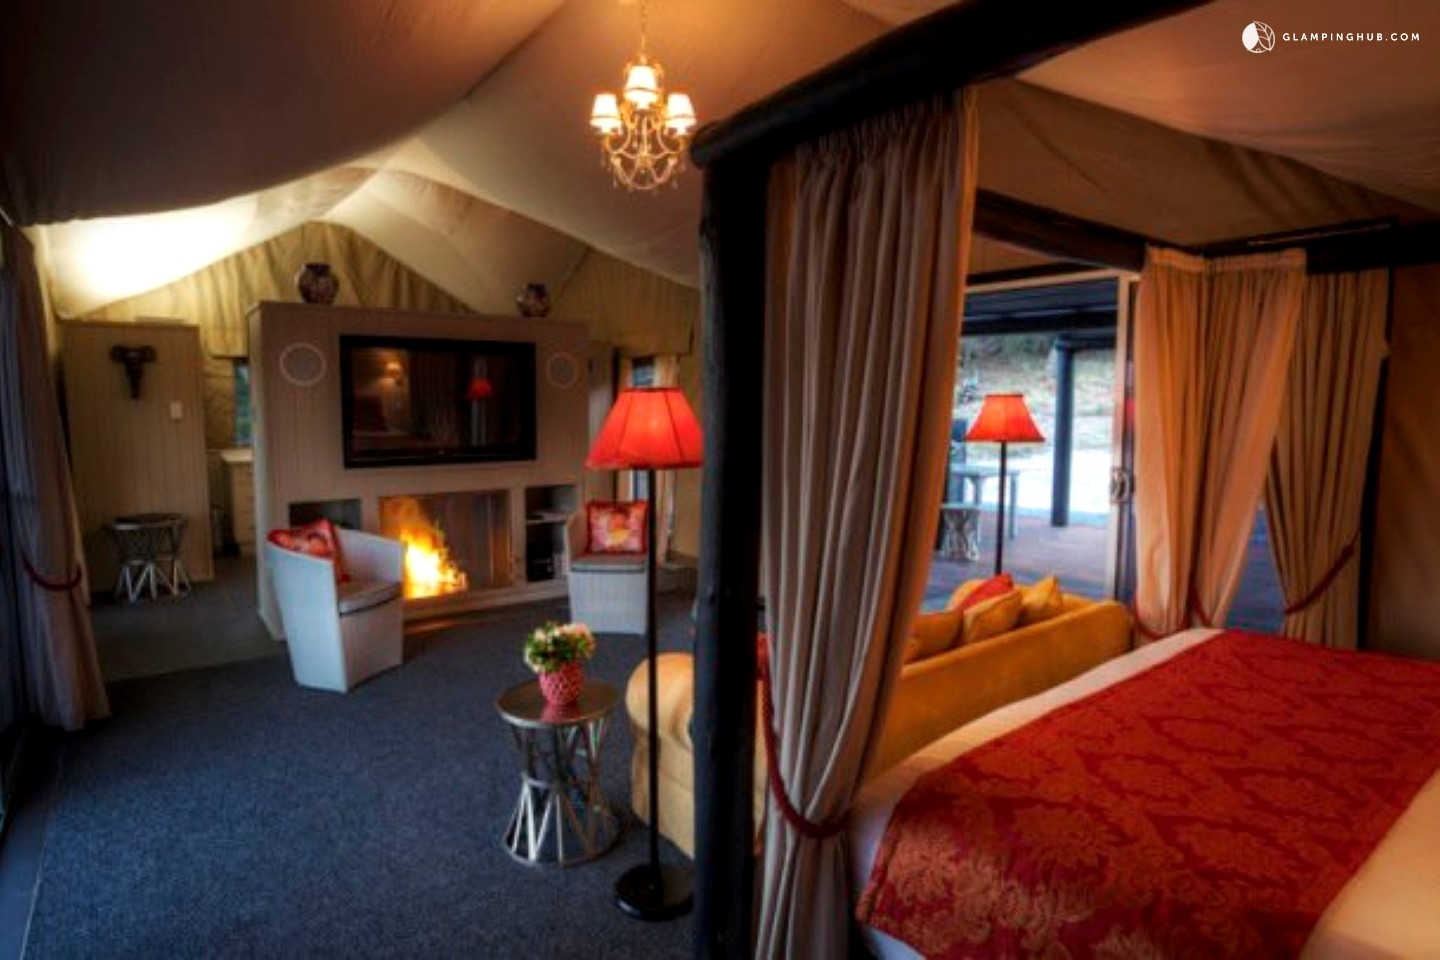 Luxury Tents Stanthorpe With Spa Au Cabin Tents With Hot Tub